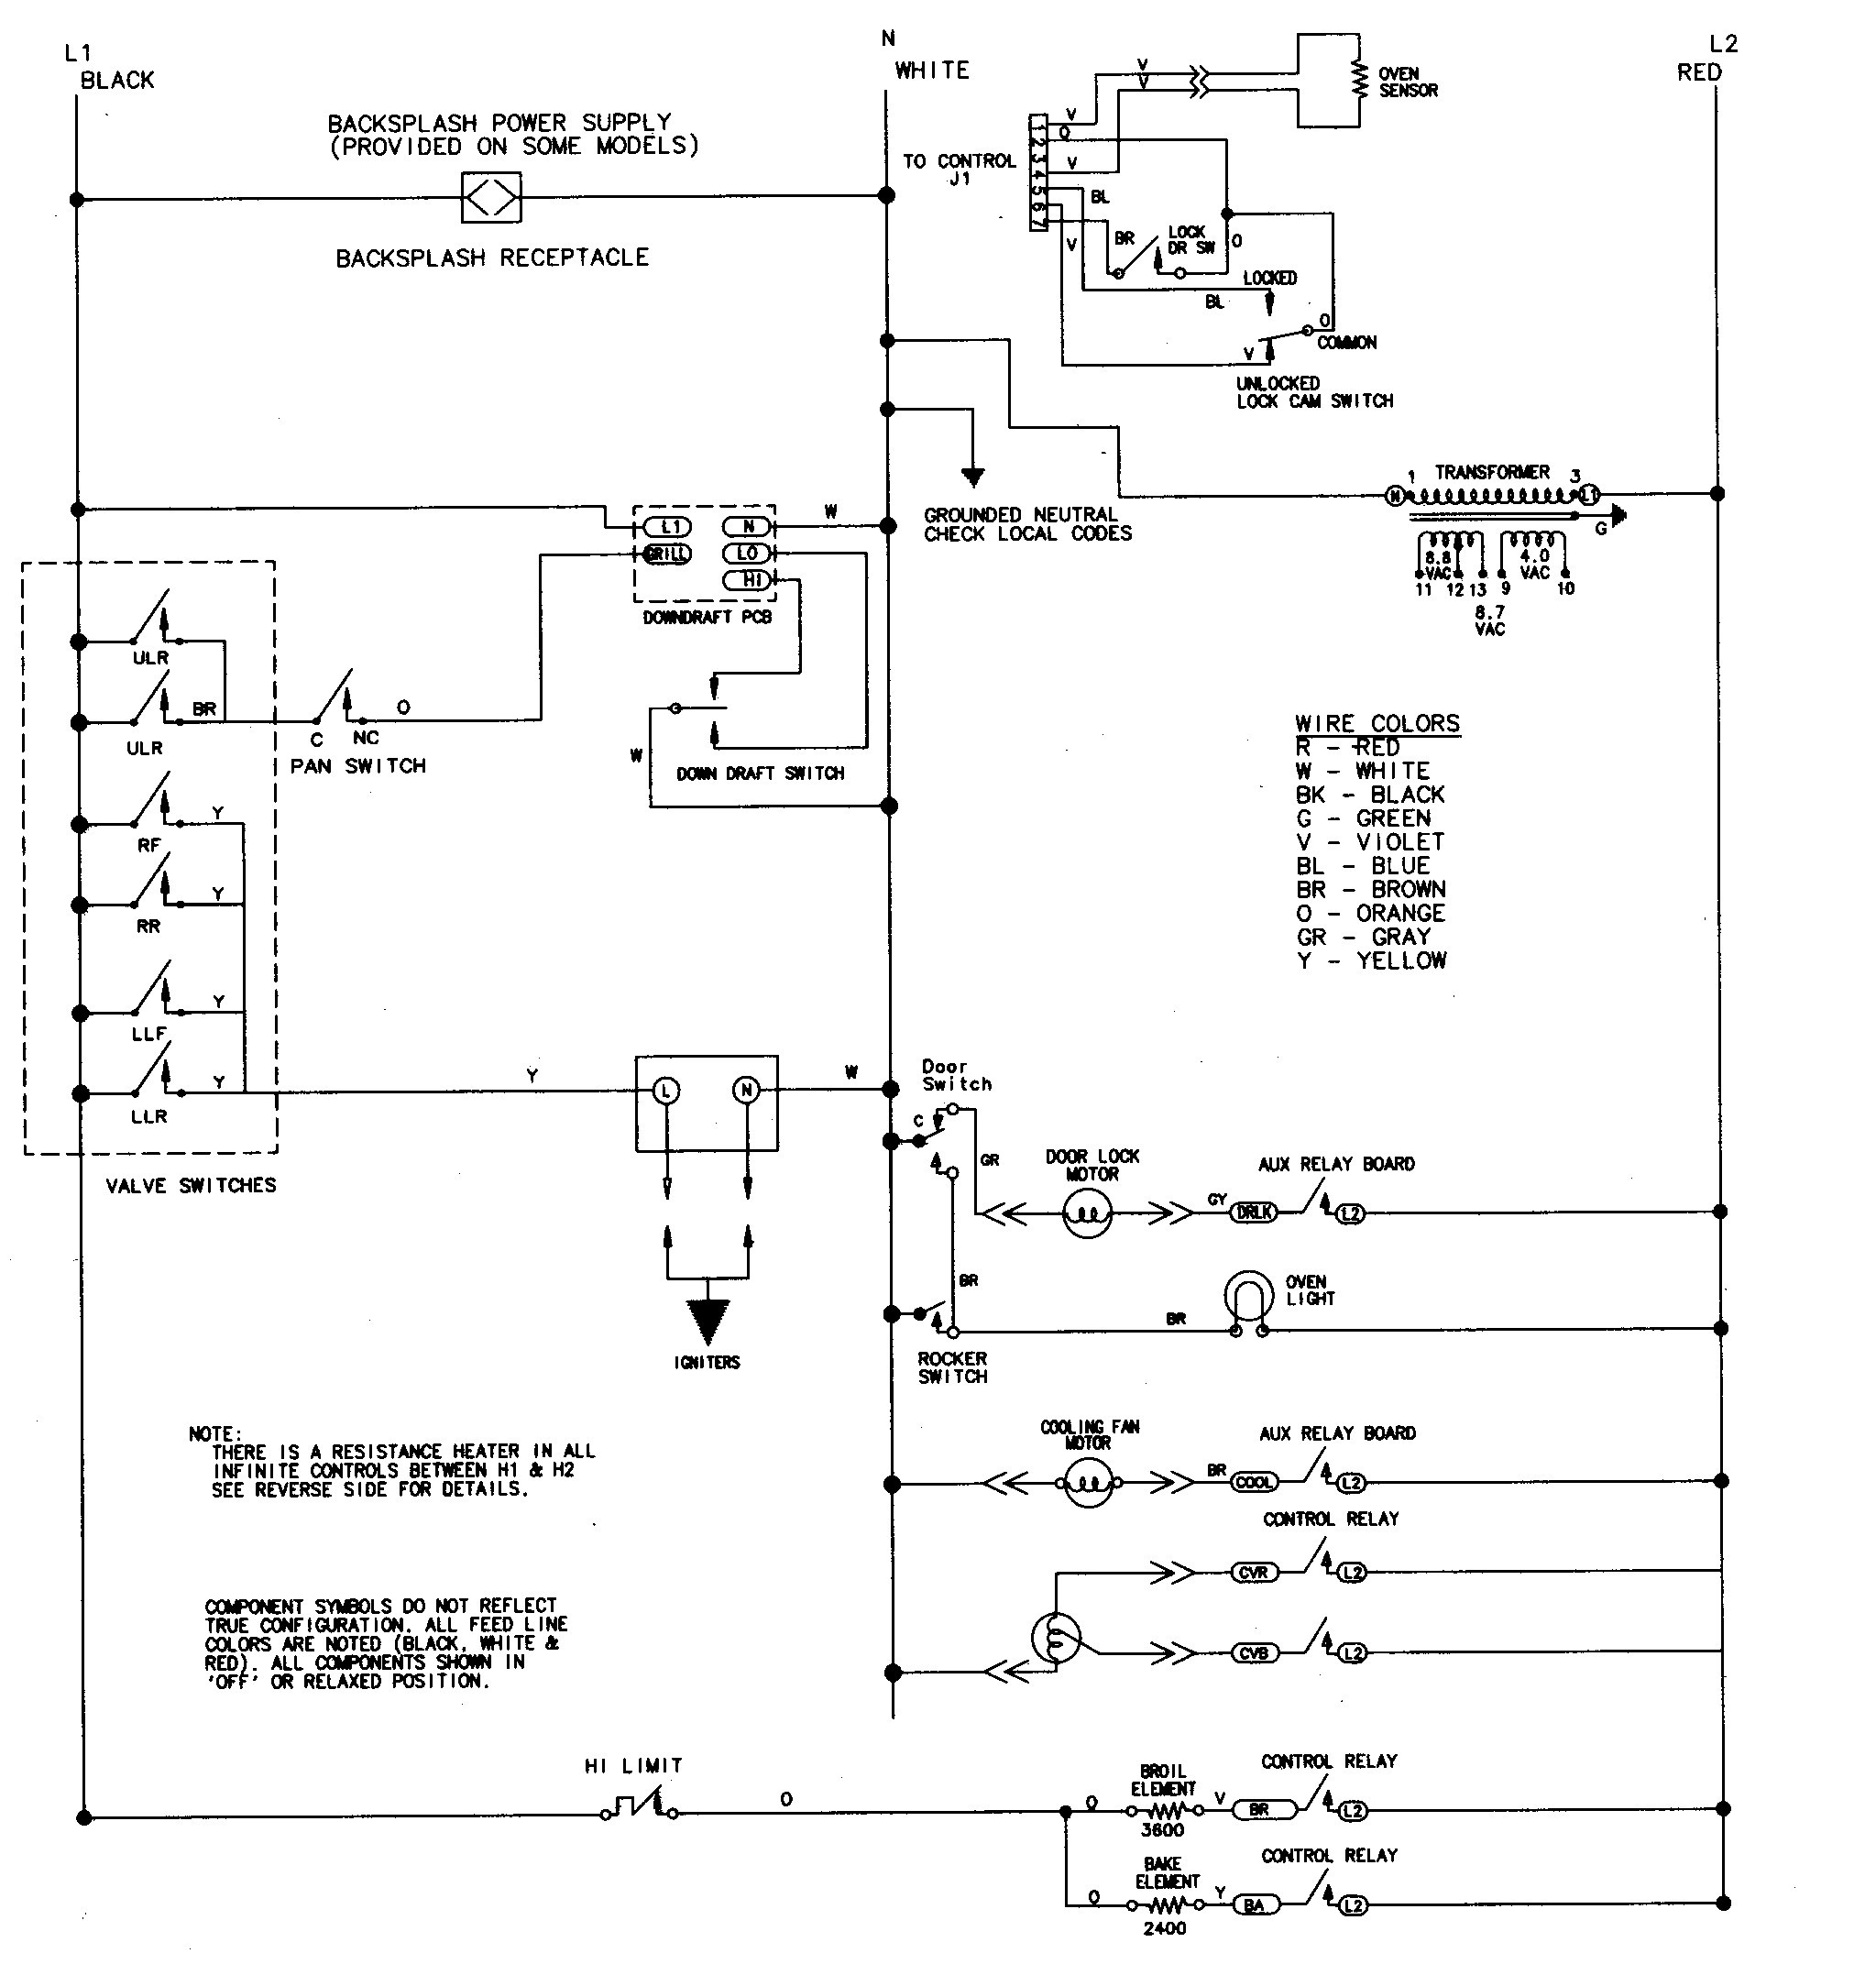 belling cooker wiring diagram er for library stove image